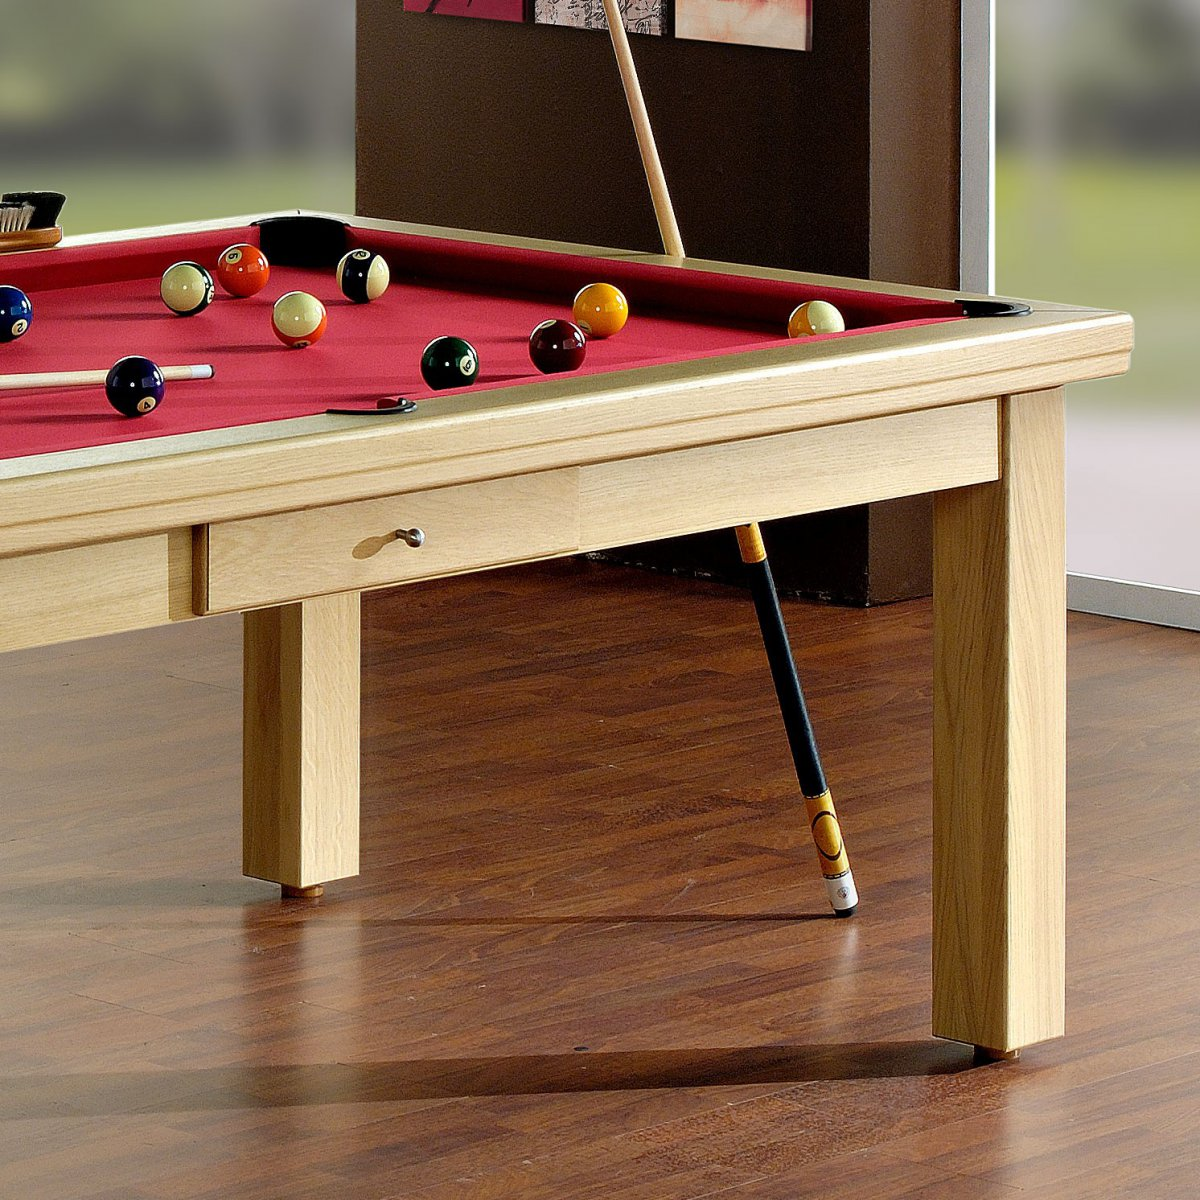 Table manger billard mod le sydney prestige for Table billard convertible belgique